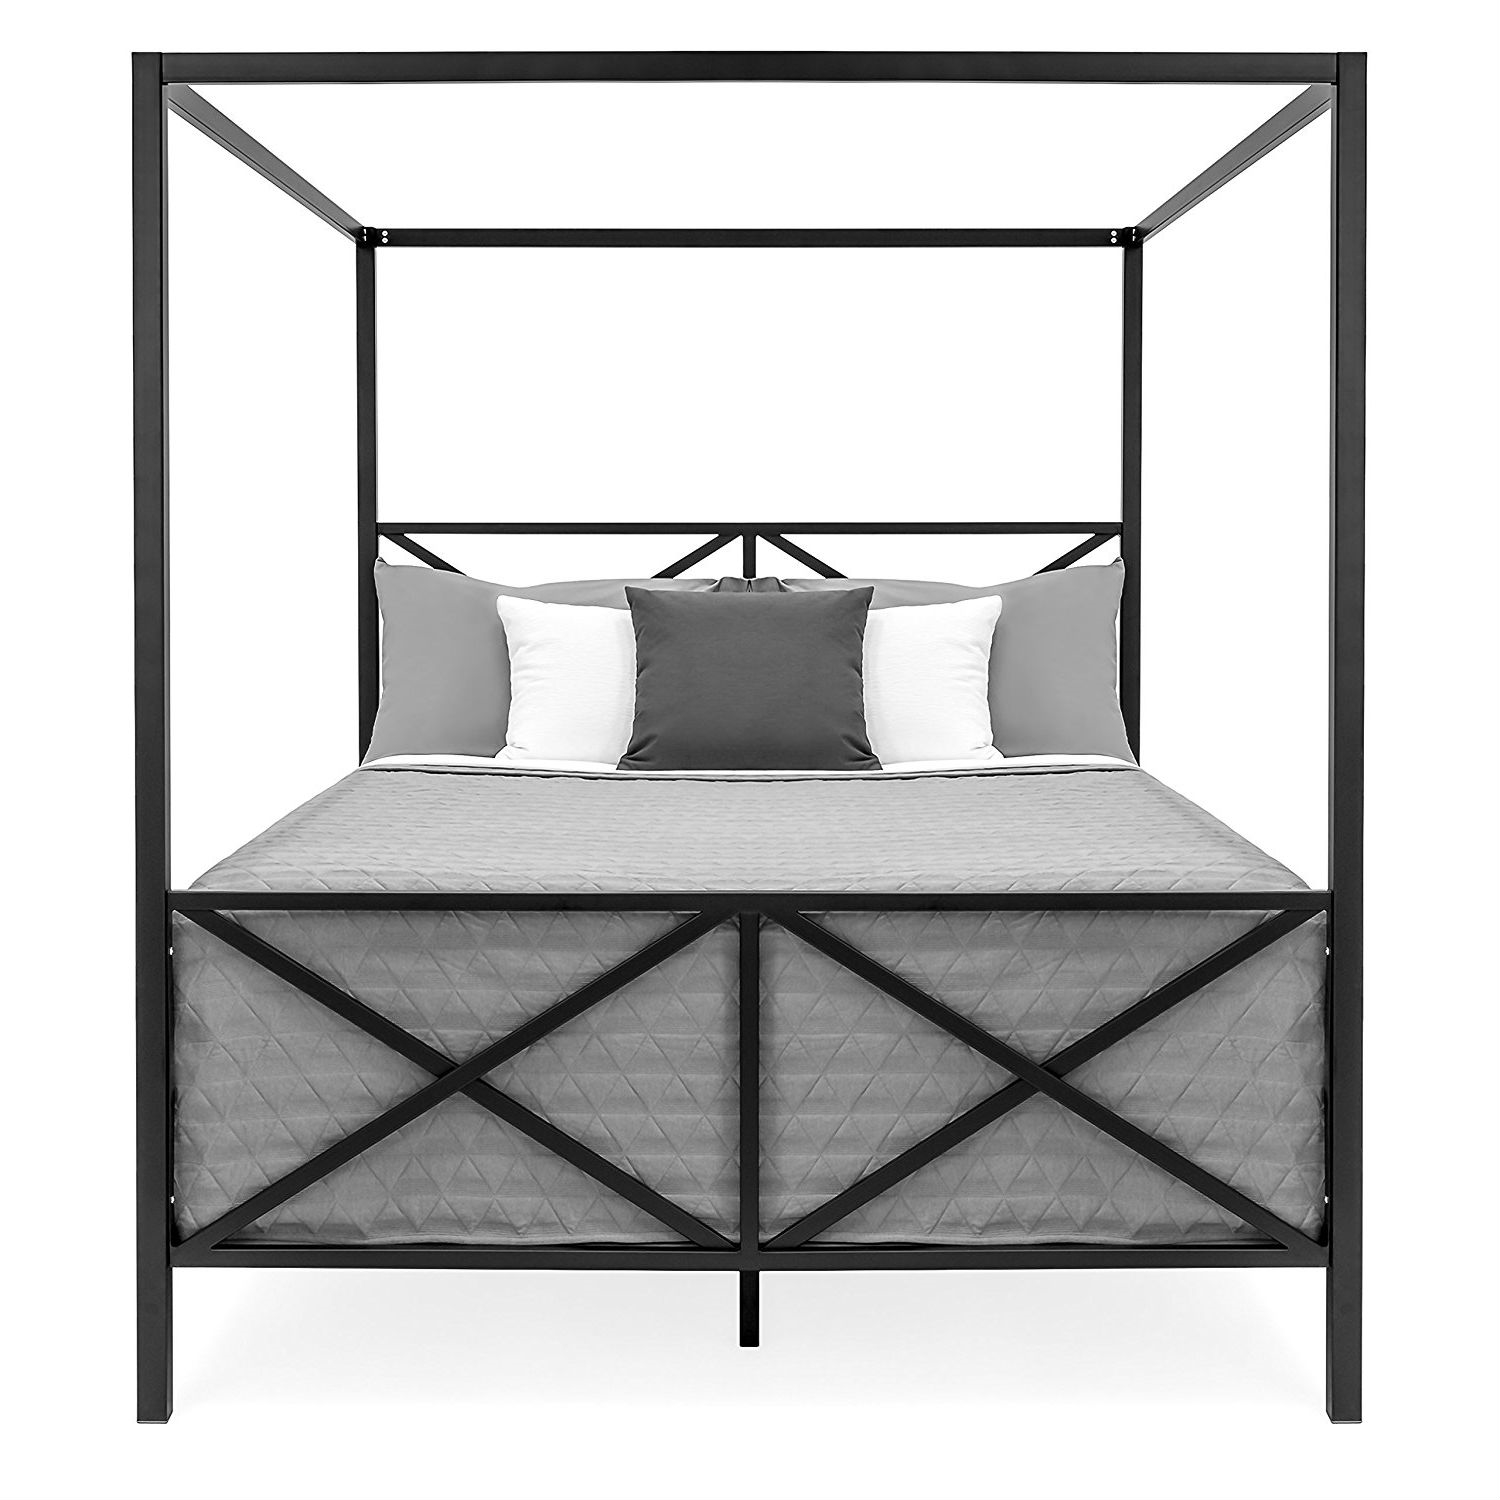 Queen size 4-Post Canopy Bed Frame in Black Metal Finish ...